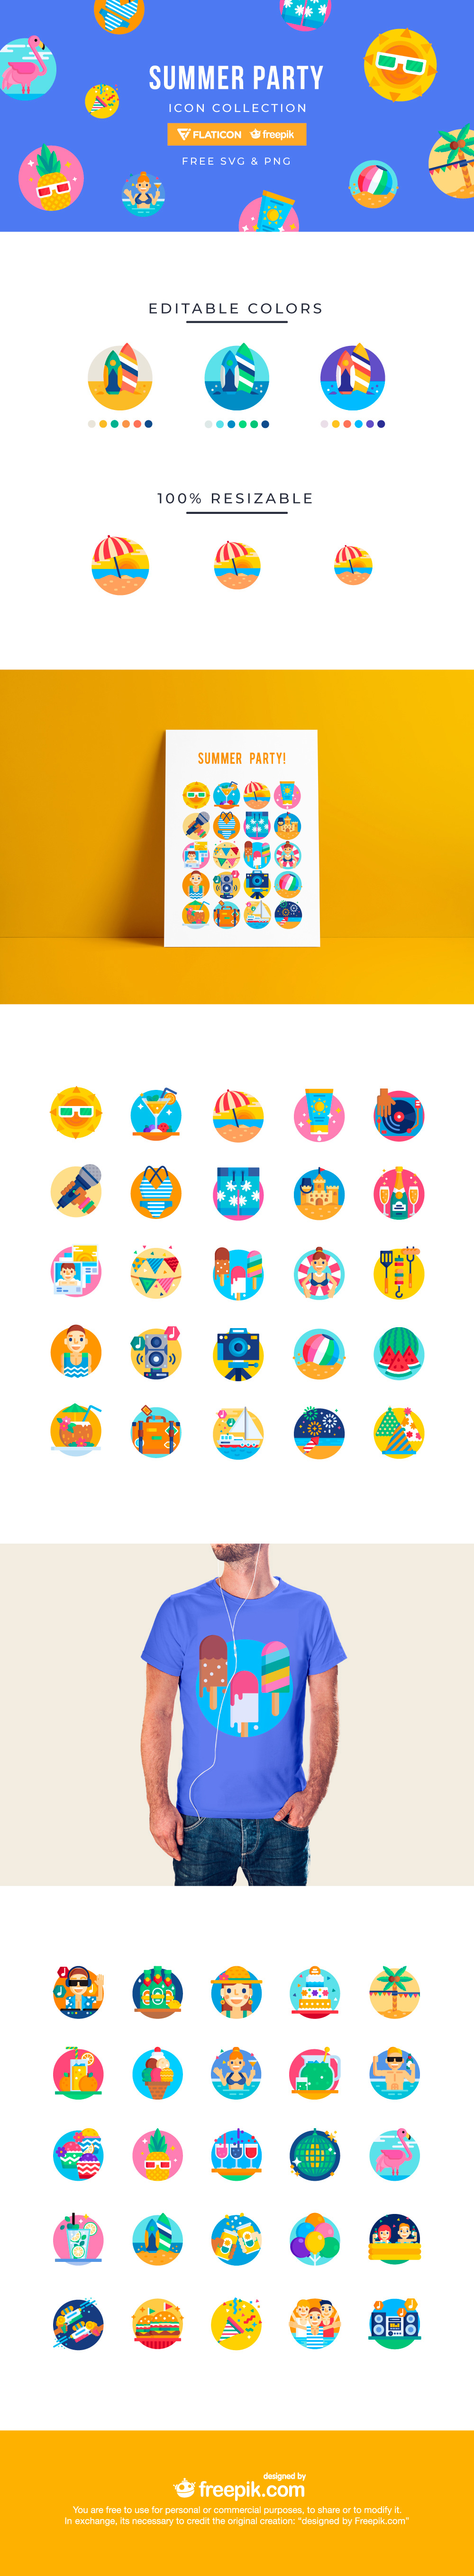 Summer Party Icon Collection